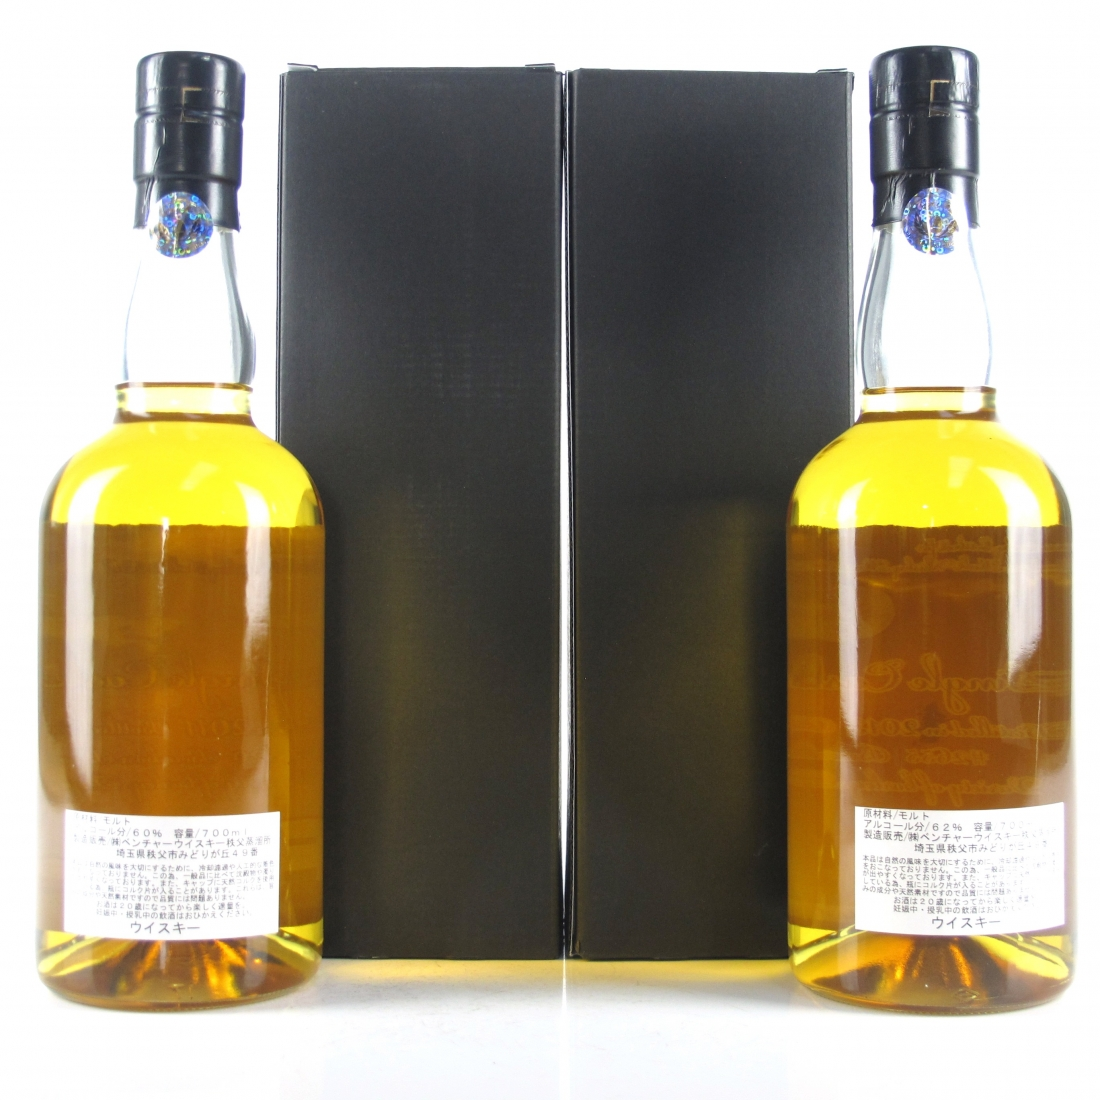 Ichiro's Malt Single Casks #1320 and #2655 2 x 70cl / Modern Malt Whisky Market 2017